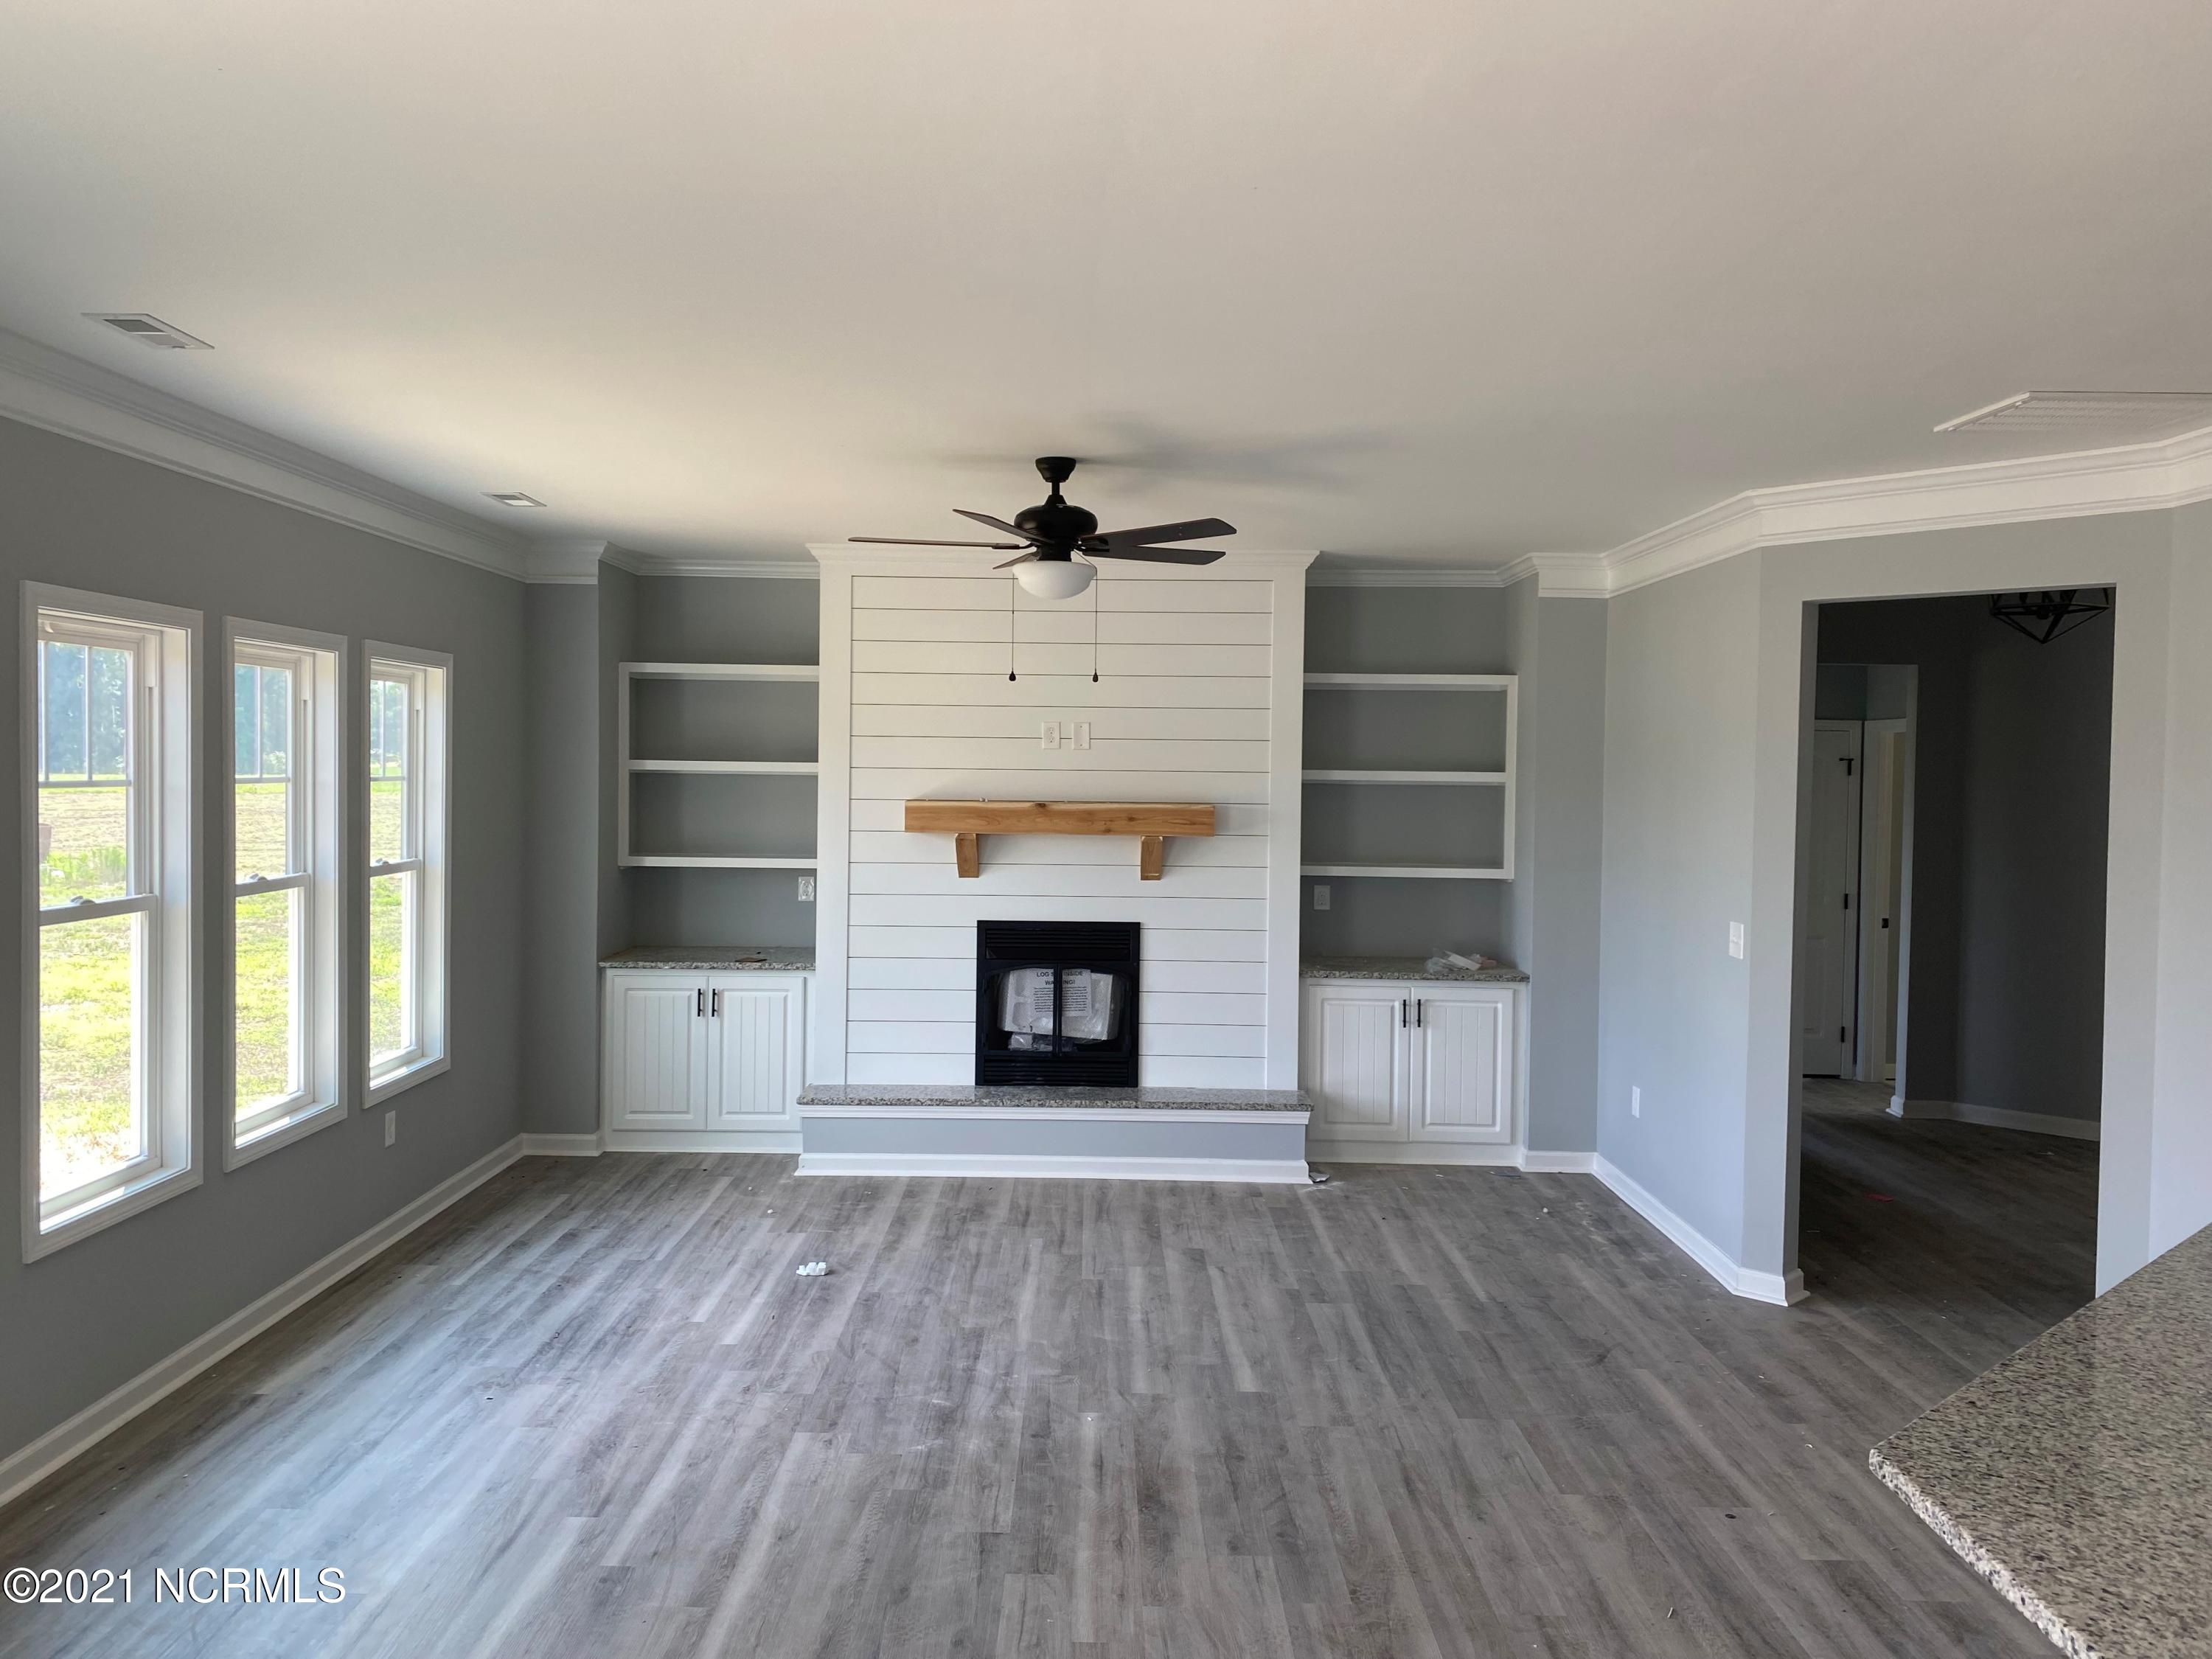 4925 W Nc 97, Spring Hope, North Carolina 27882, 3 Bedrooms Bedrooms, 8 Rooms Rooms,2 BathroomsBathrooms,Single family residence,For sale,W Nc 97,100261245